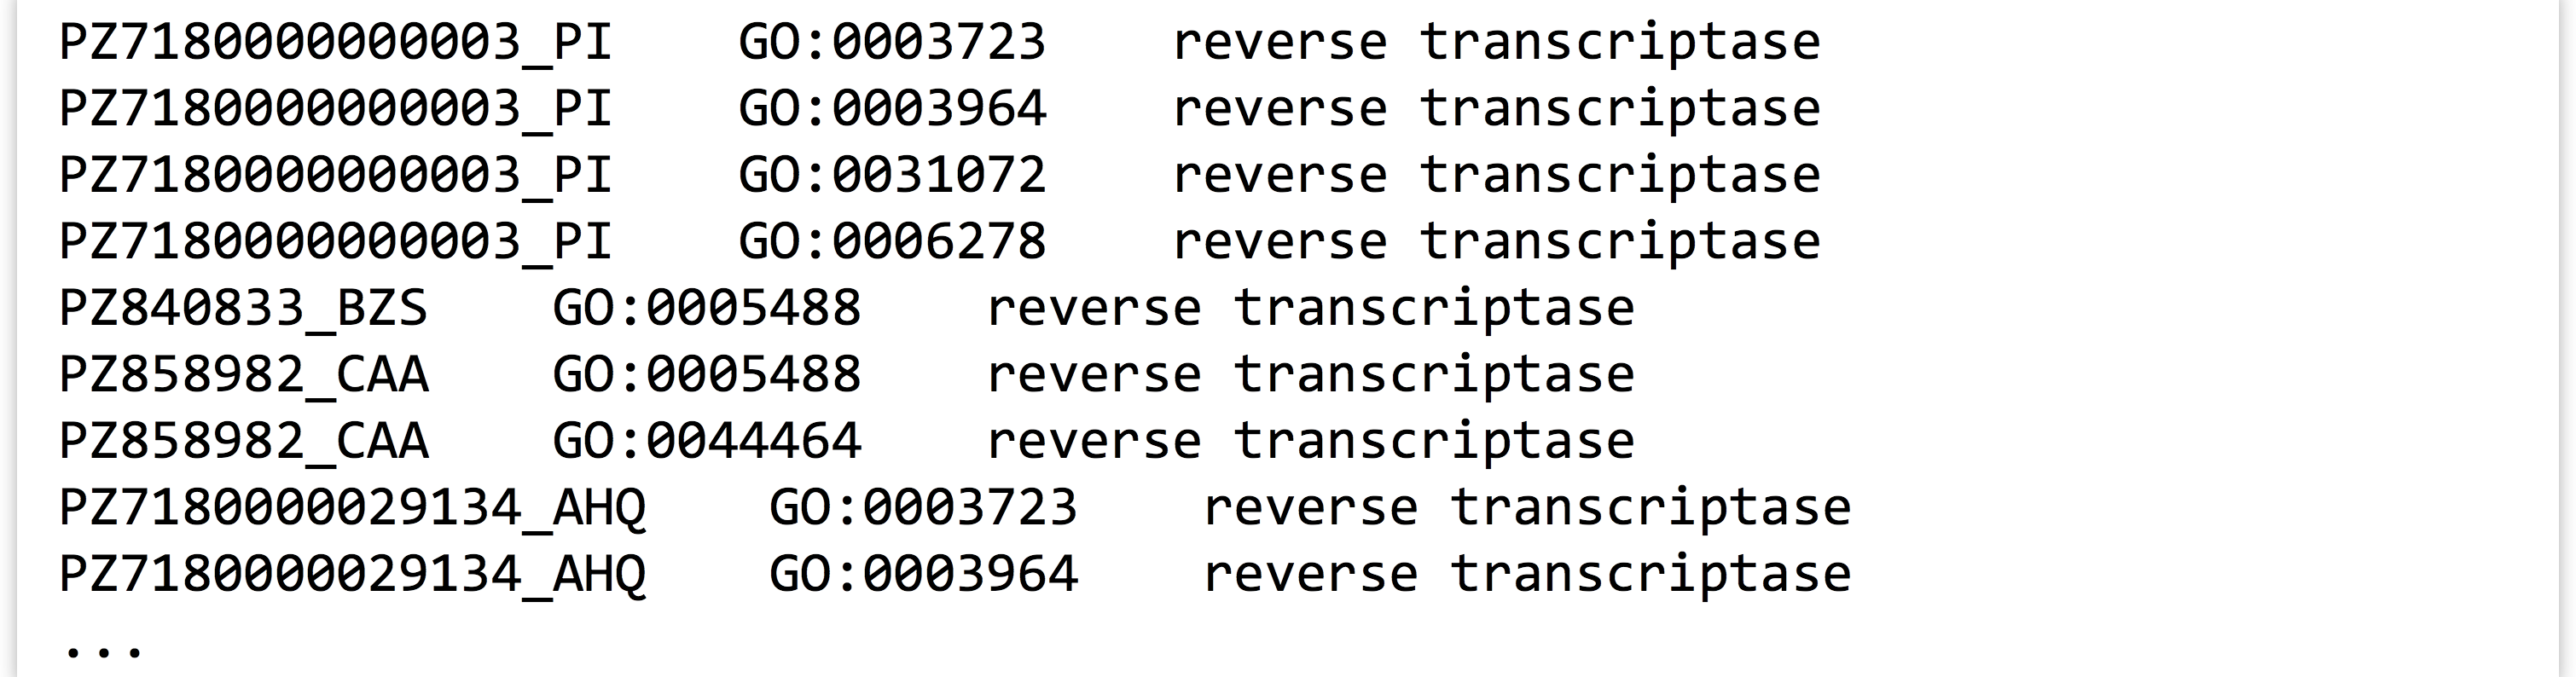 II.8_14_py_81_2_go_id_grep_transcriptase_out